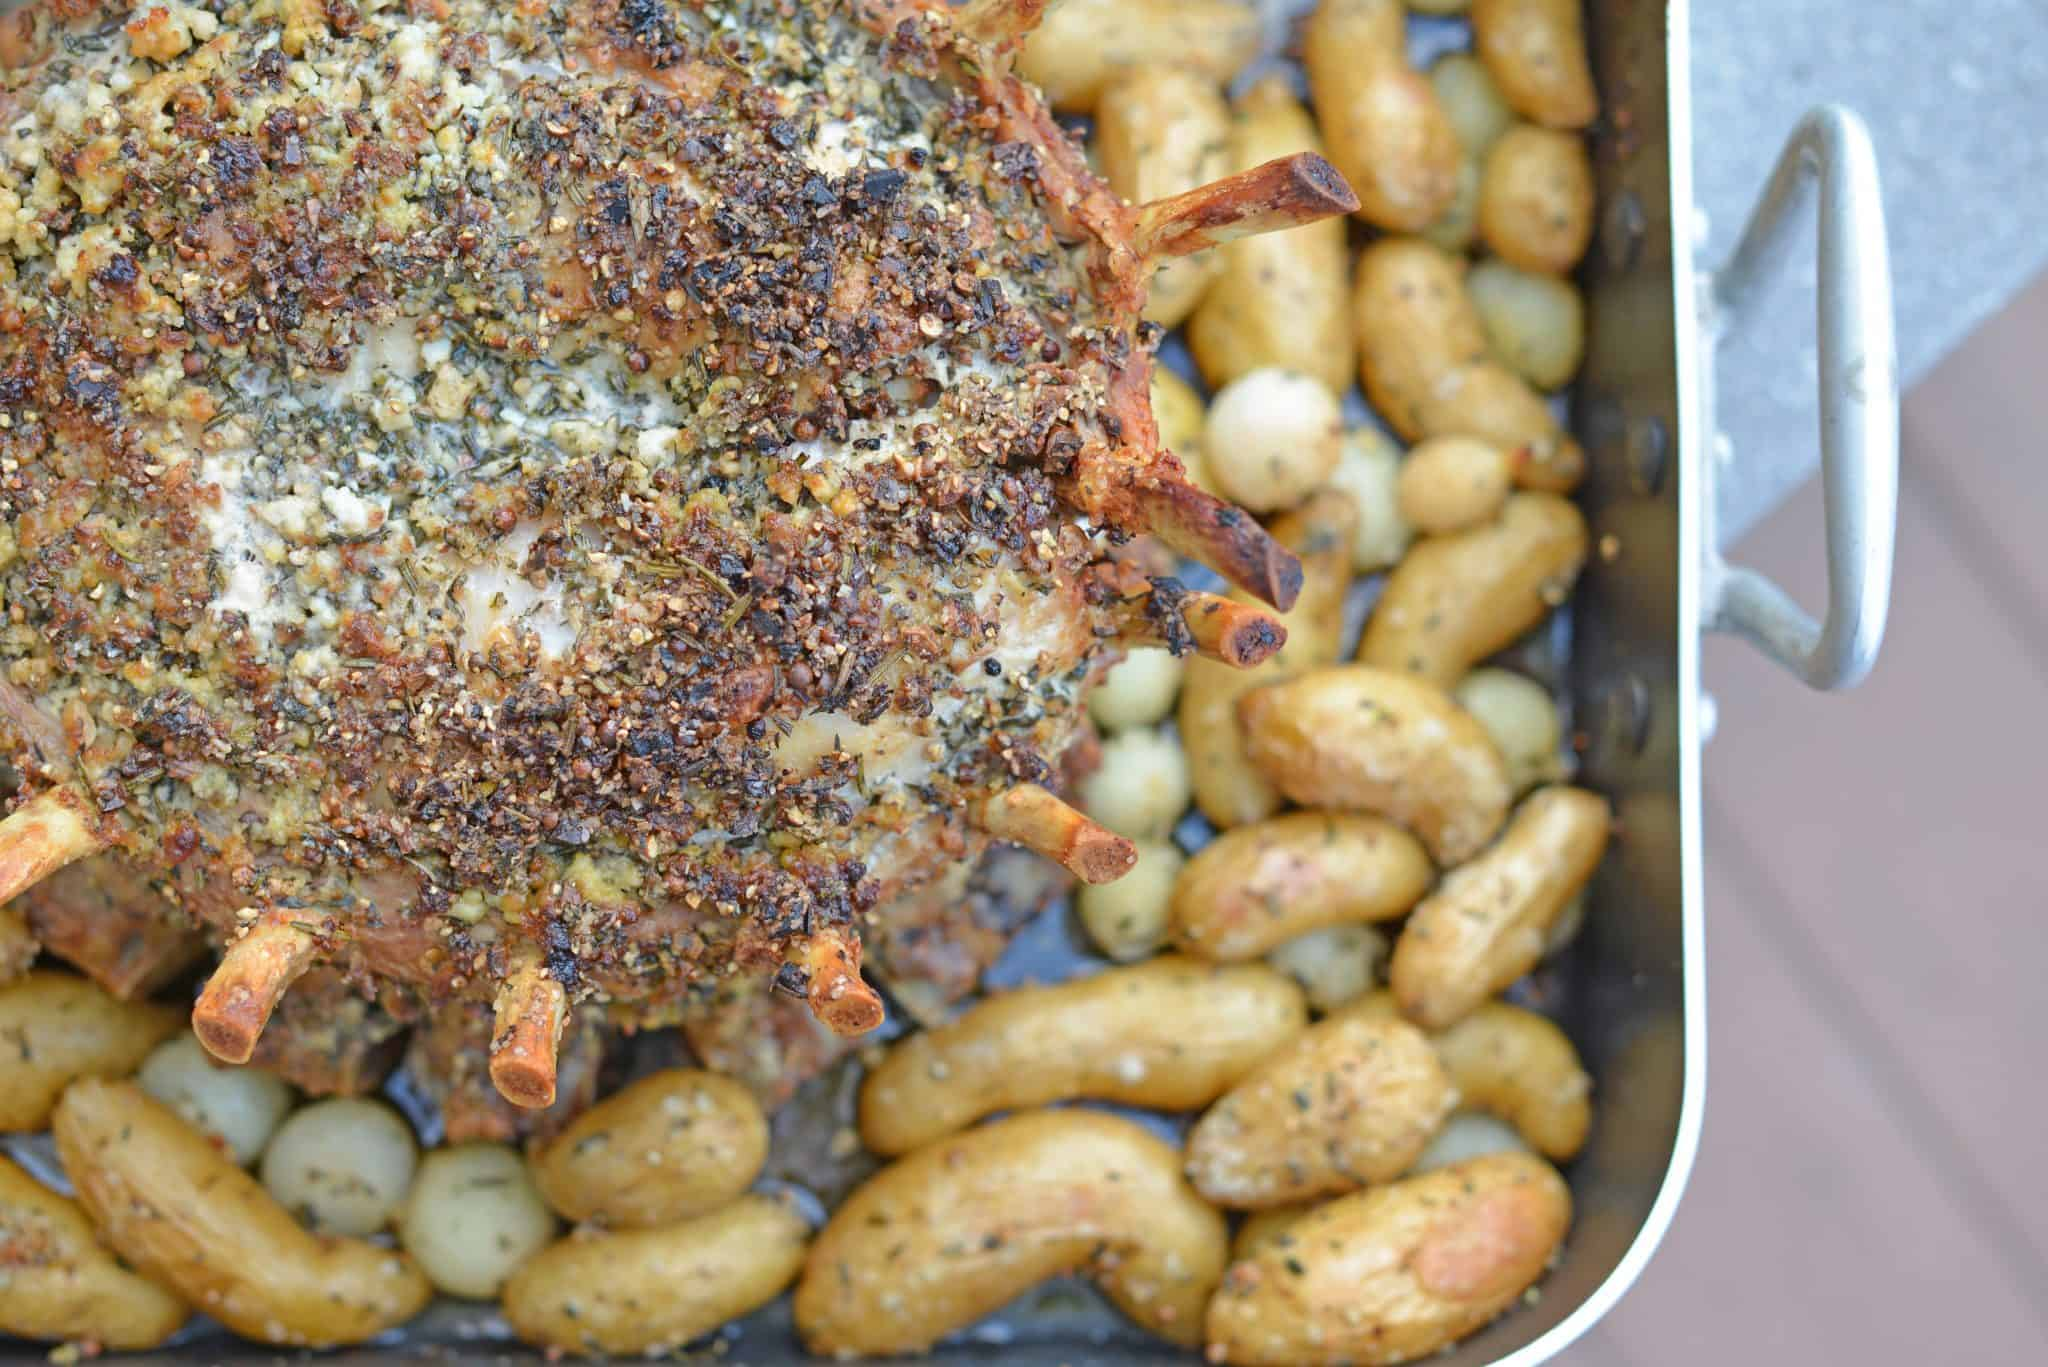 Crown Pork Roast is the perfect special occasion or holiday meal to serve for a crowd. Tasty and impressive presentation make this a winning pork recipe!